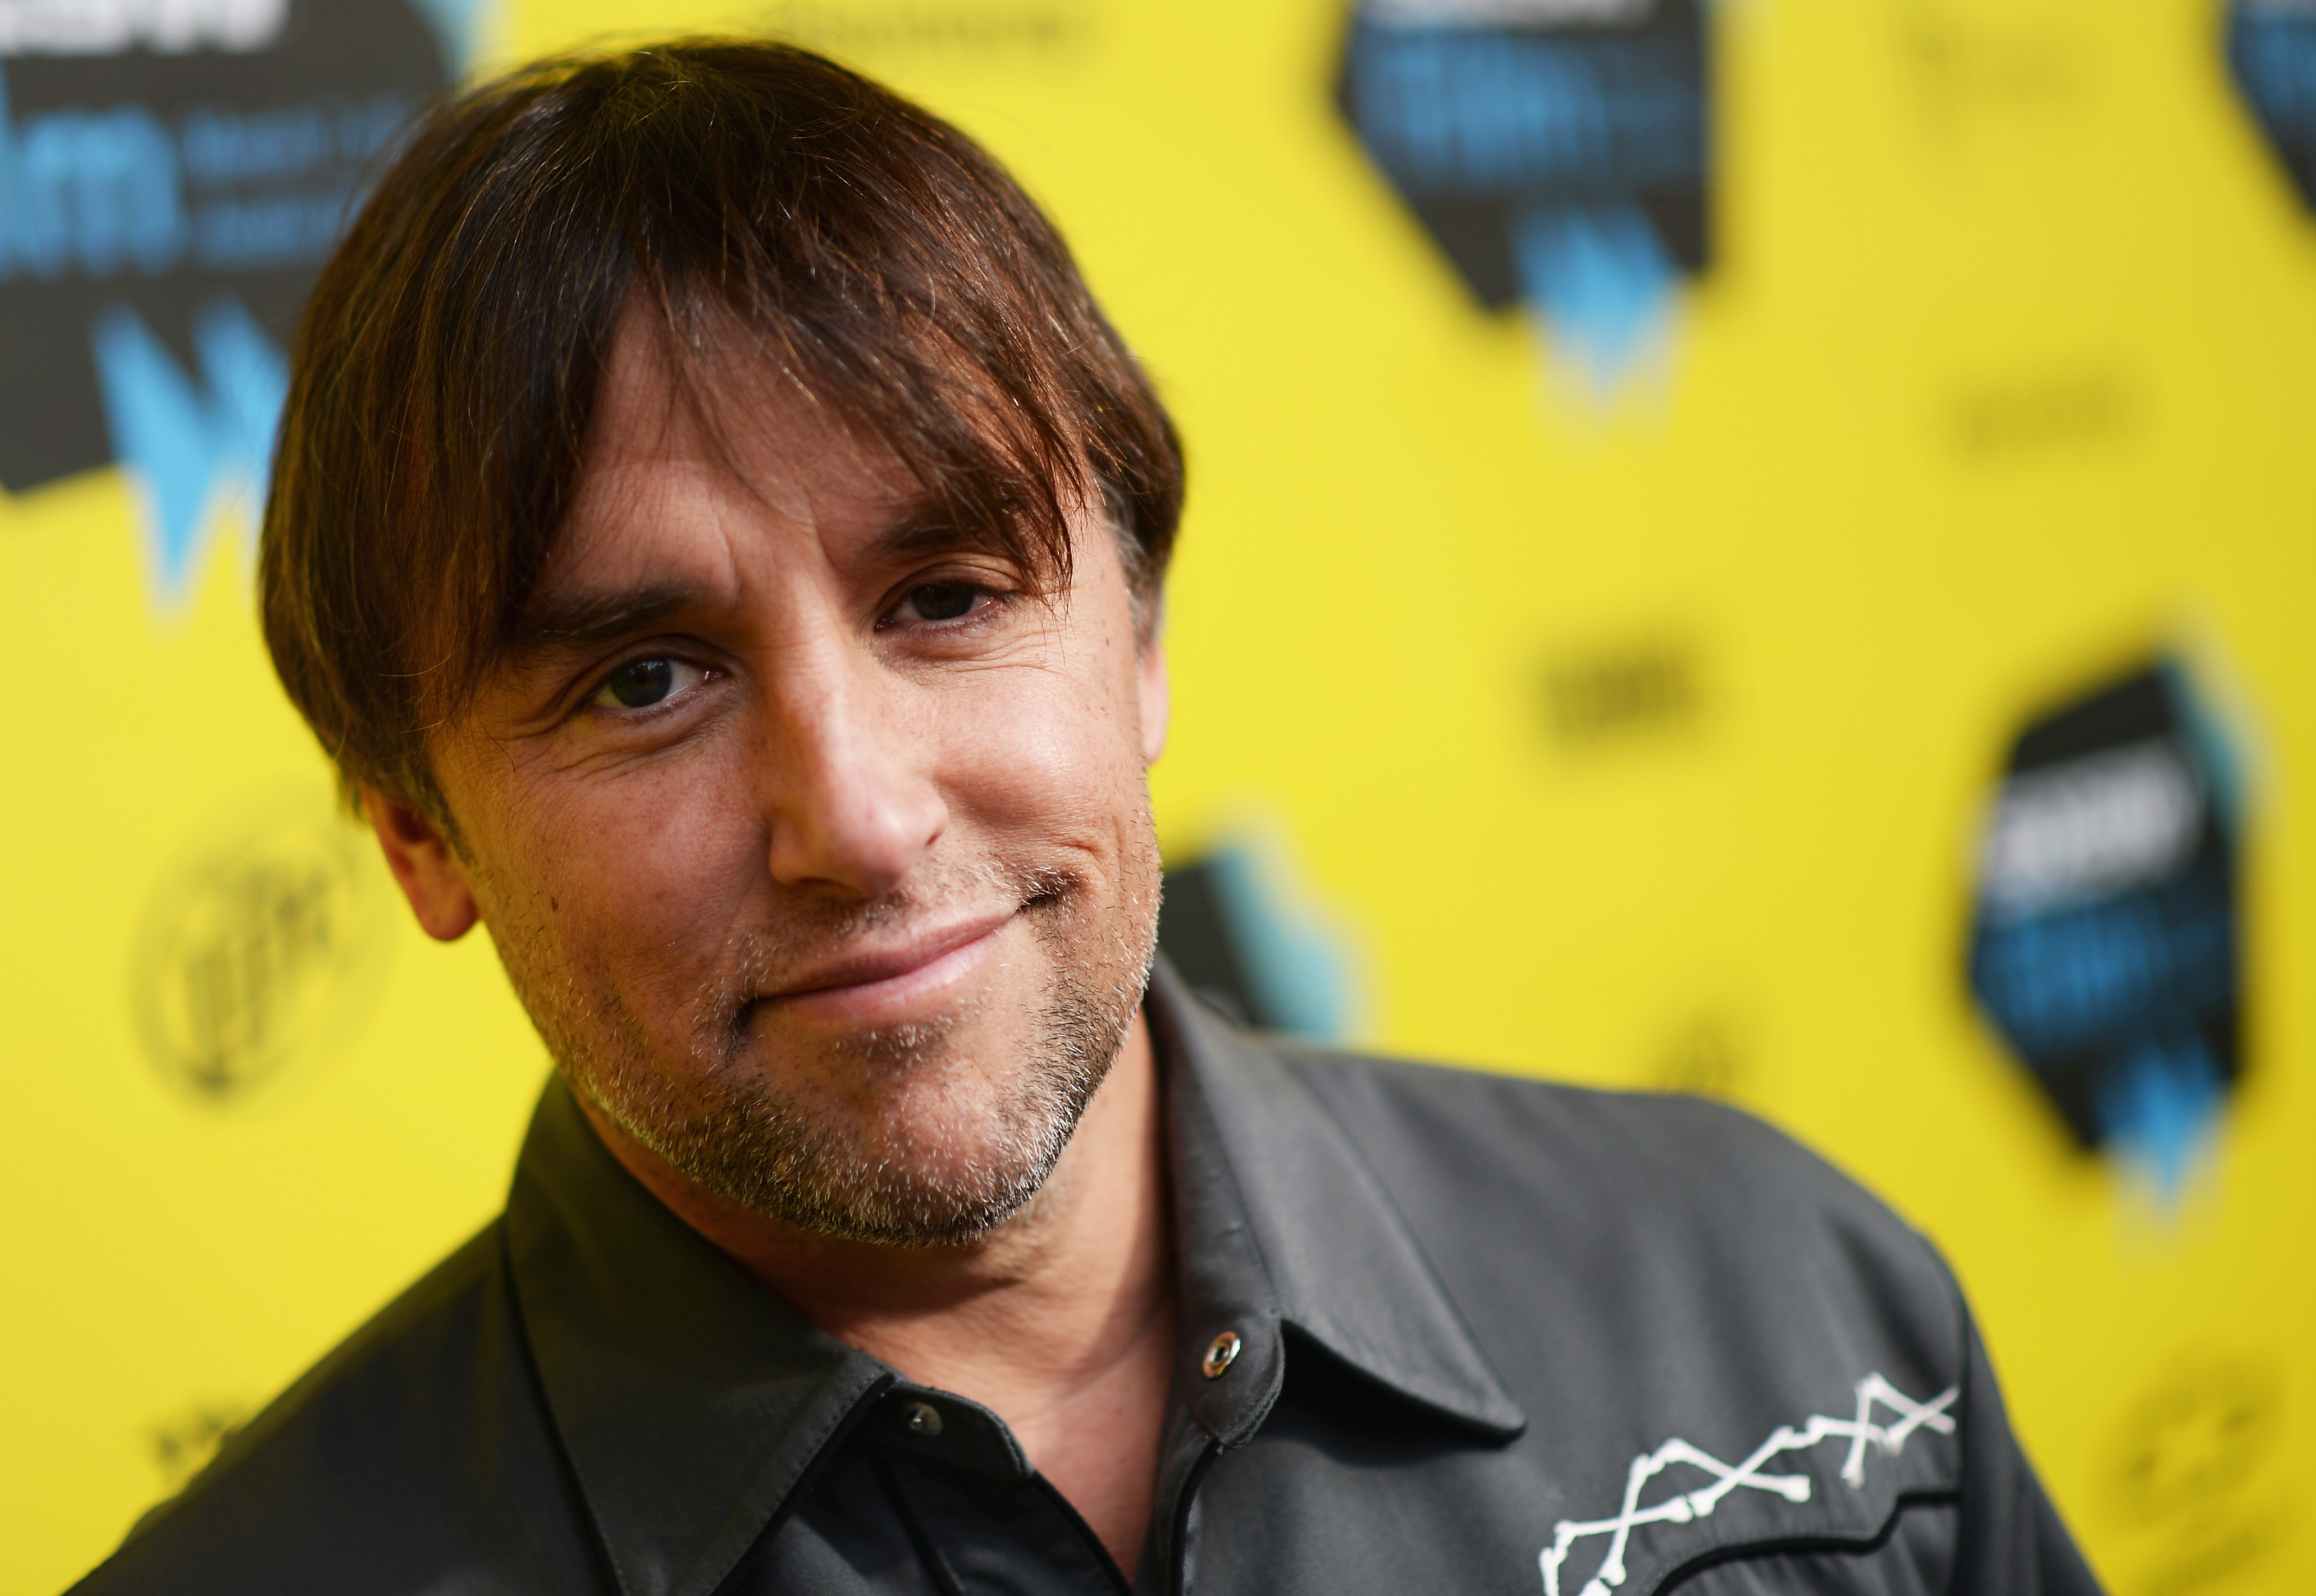 AUSTIN, TX - MARCH 09:  Director Richard Linklater arrives at the premiere of 'Boyhood' at the 2014 SXSW Music, Film + Intera